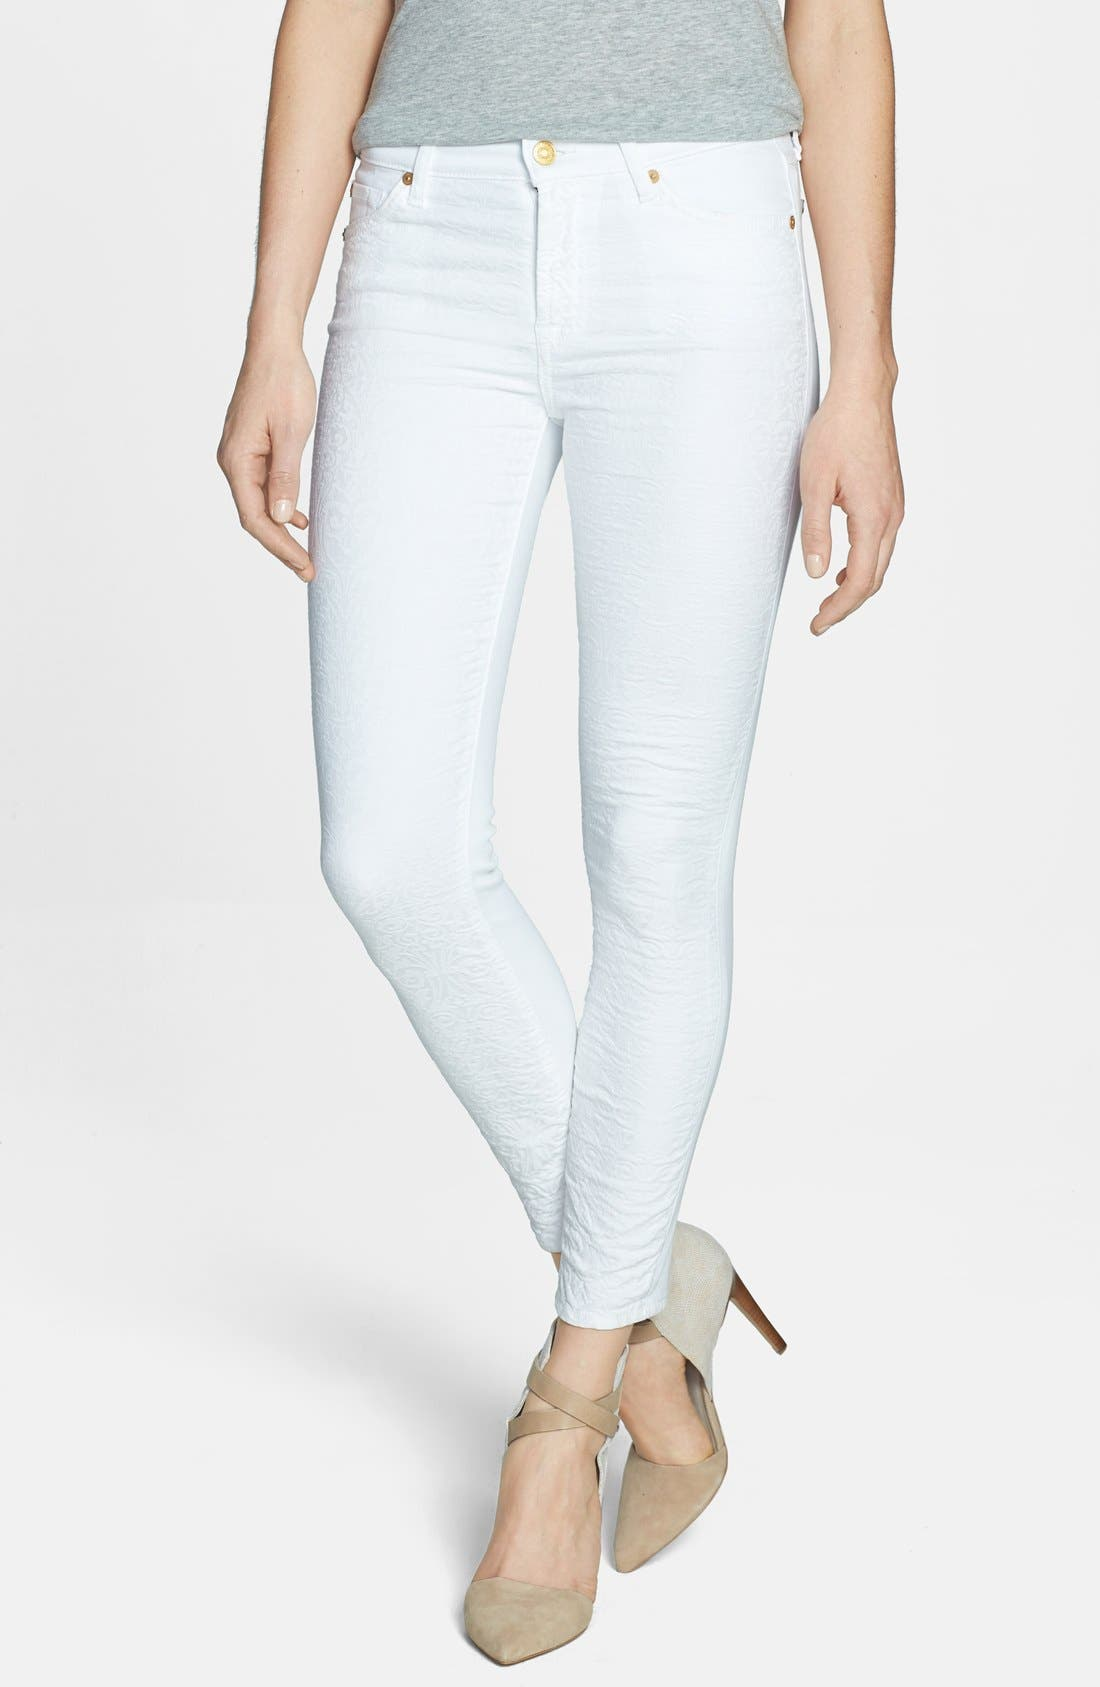 Alternate Image 1 Selected - 7 For All Mankind® Textured Front Skinny Jeans (White Royal Jacquard)